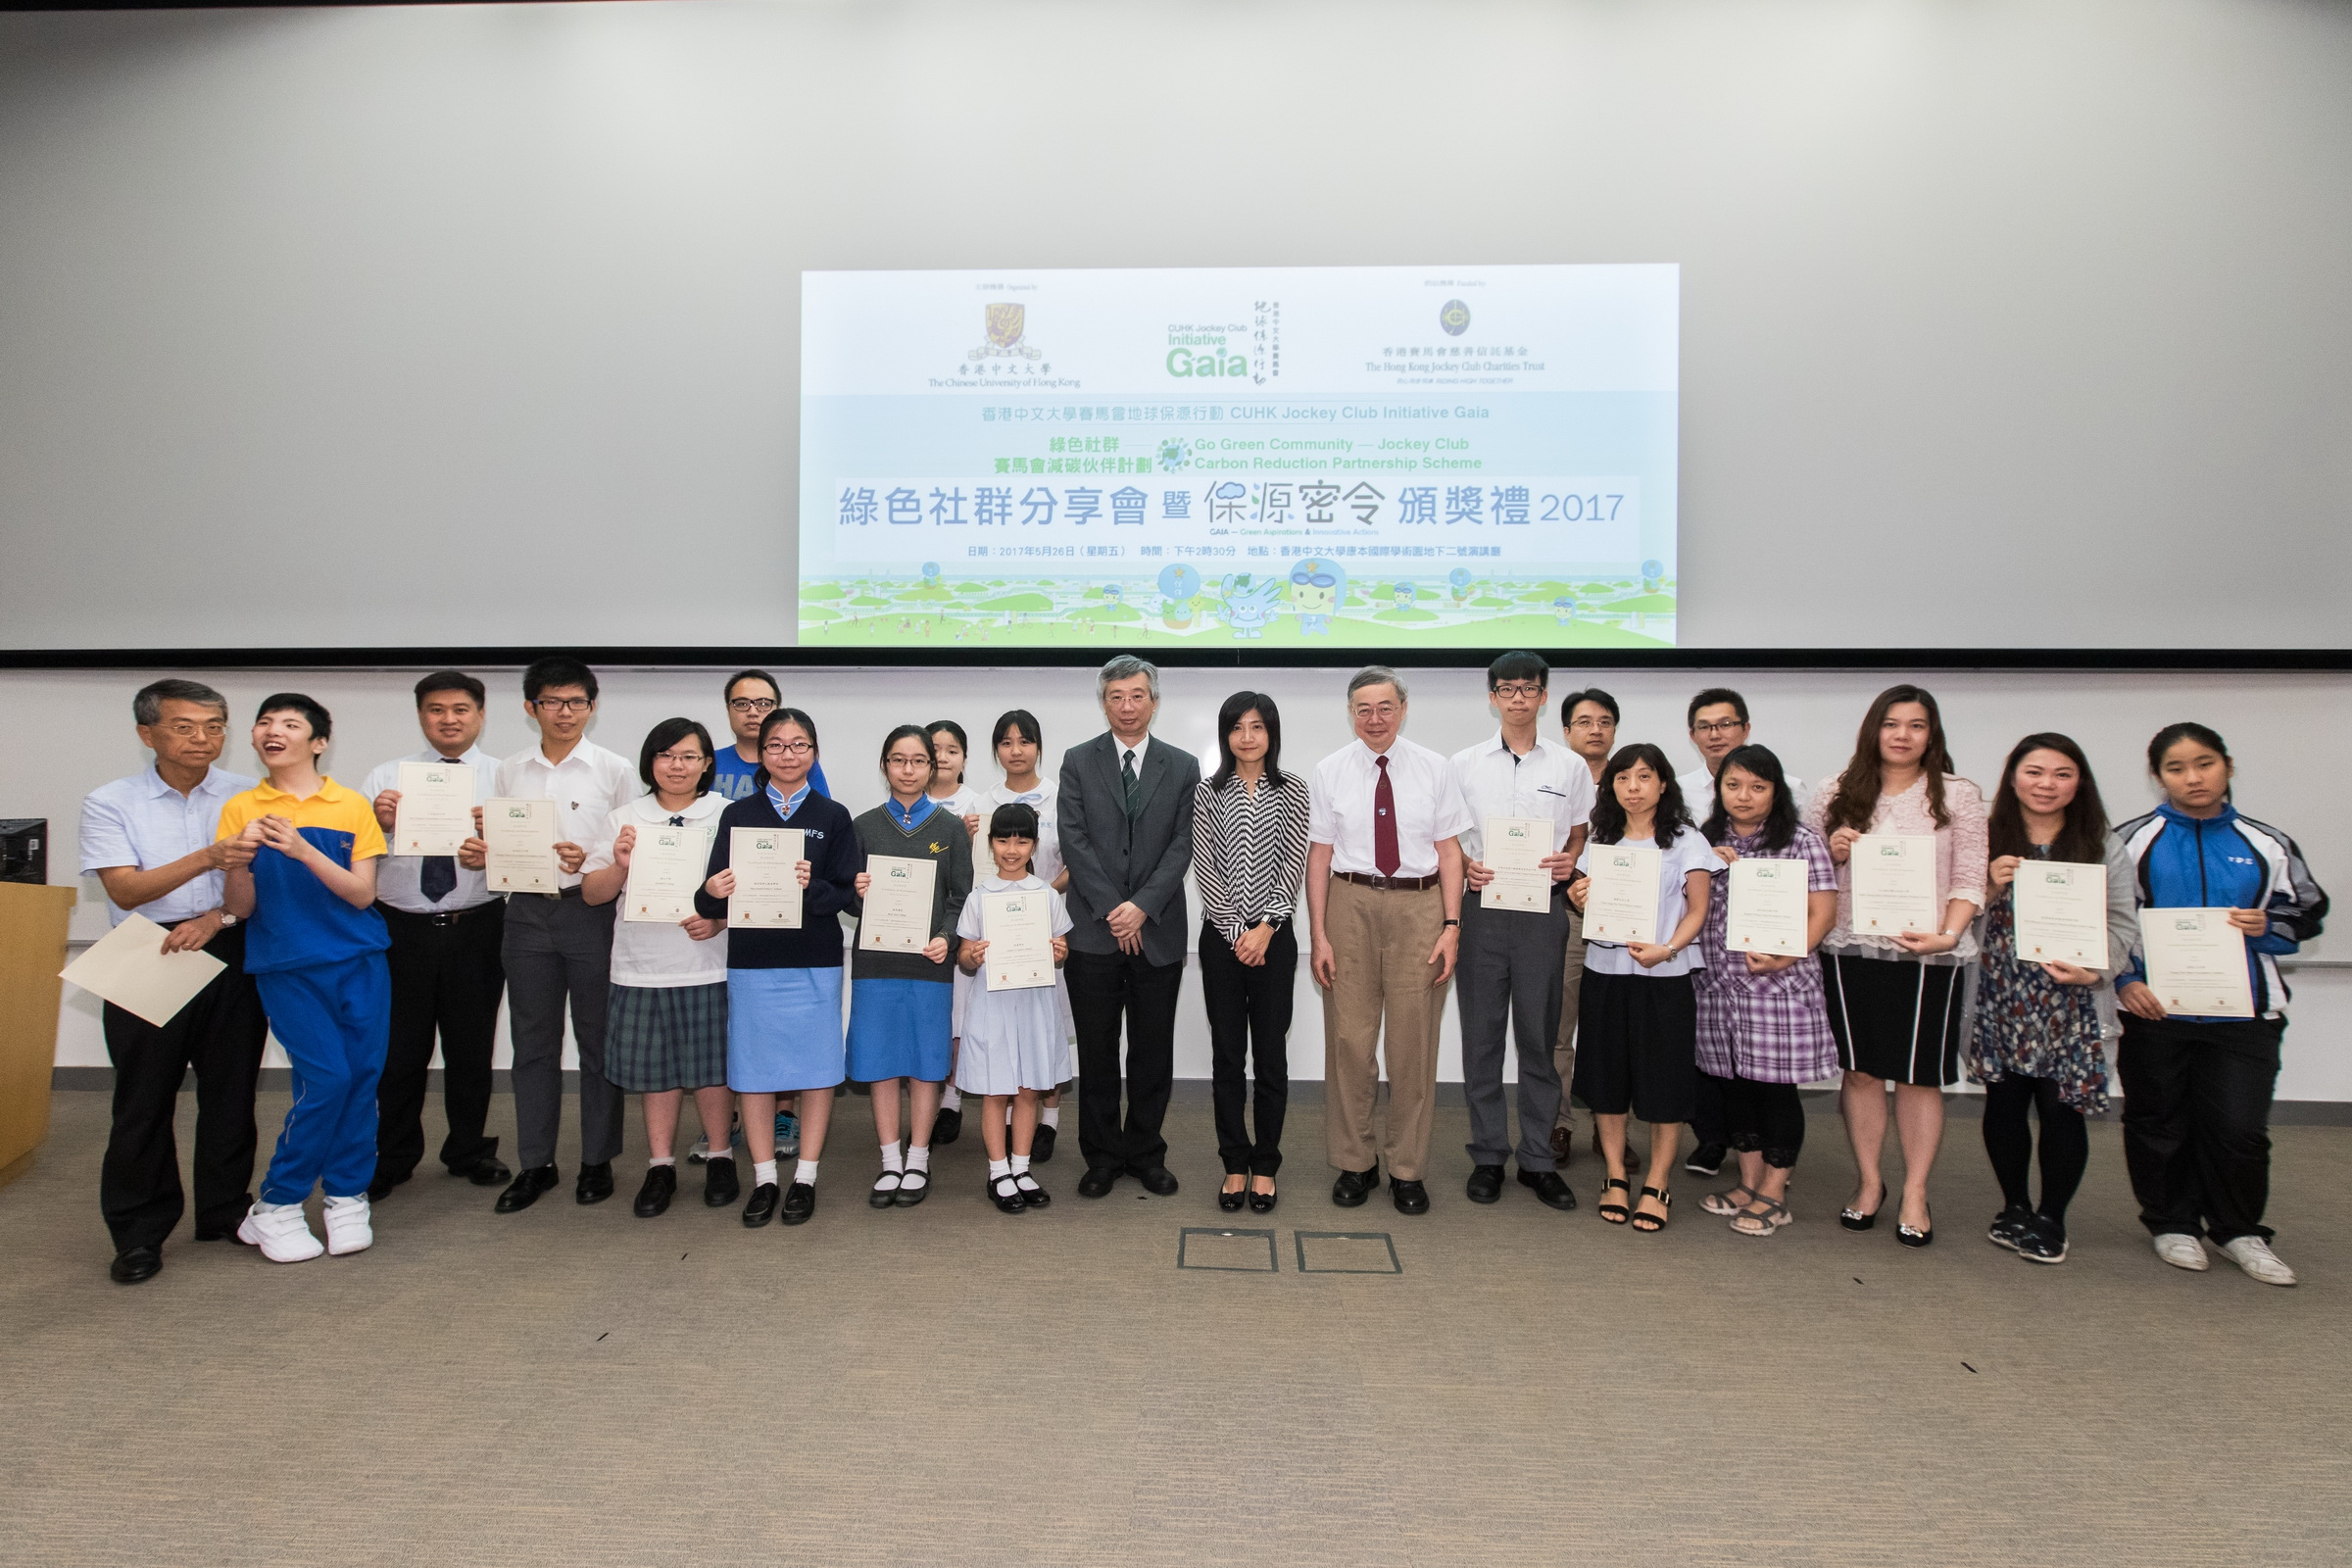 (9th to 11th from right) Prof. Gabriel Lau, AXA Professor of Geography and Resource Management and Director of the Institute of Environment, Energy and Sustainability, CUHK; Ms Vivian Lee, Senior Charities Manager of The Hong Kong Jockey Club; and Prof. Tung Fung, Associate Vice-President of CUHK present certificates of participation to members of the Go Green Community – Jockey Club Carbon Reduction Partnership Scheme.